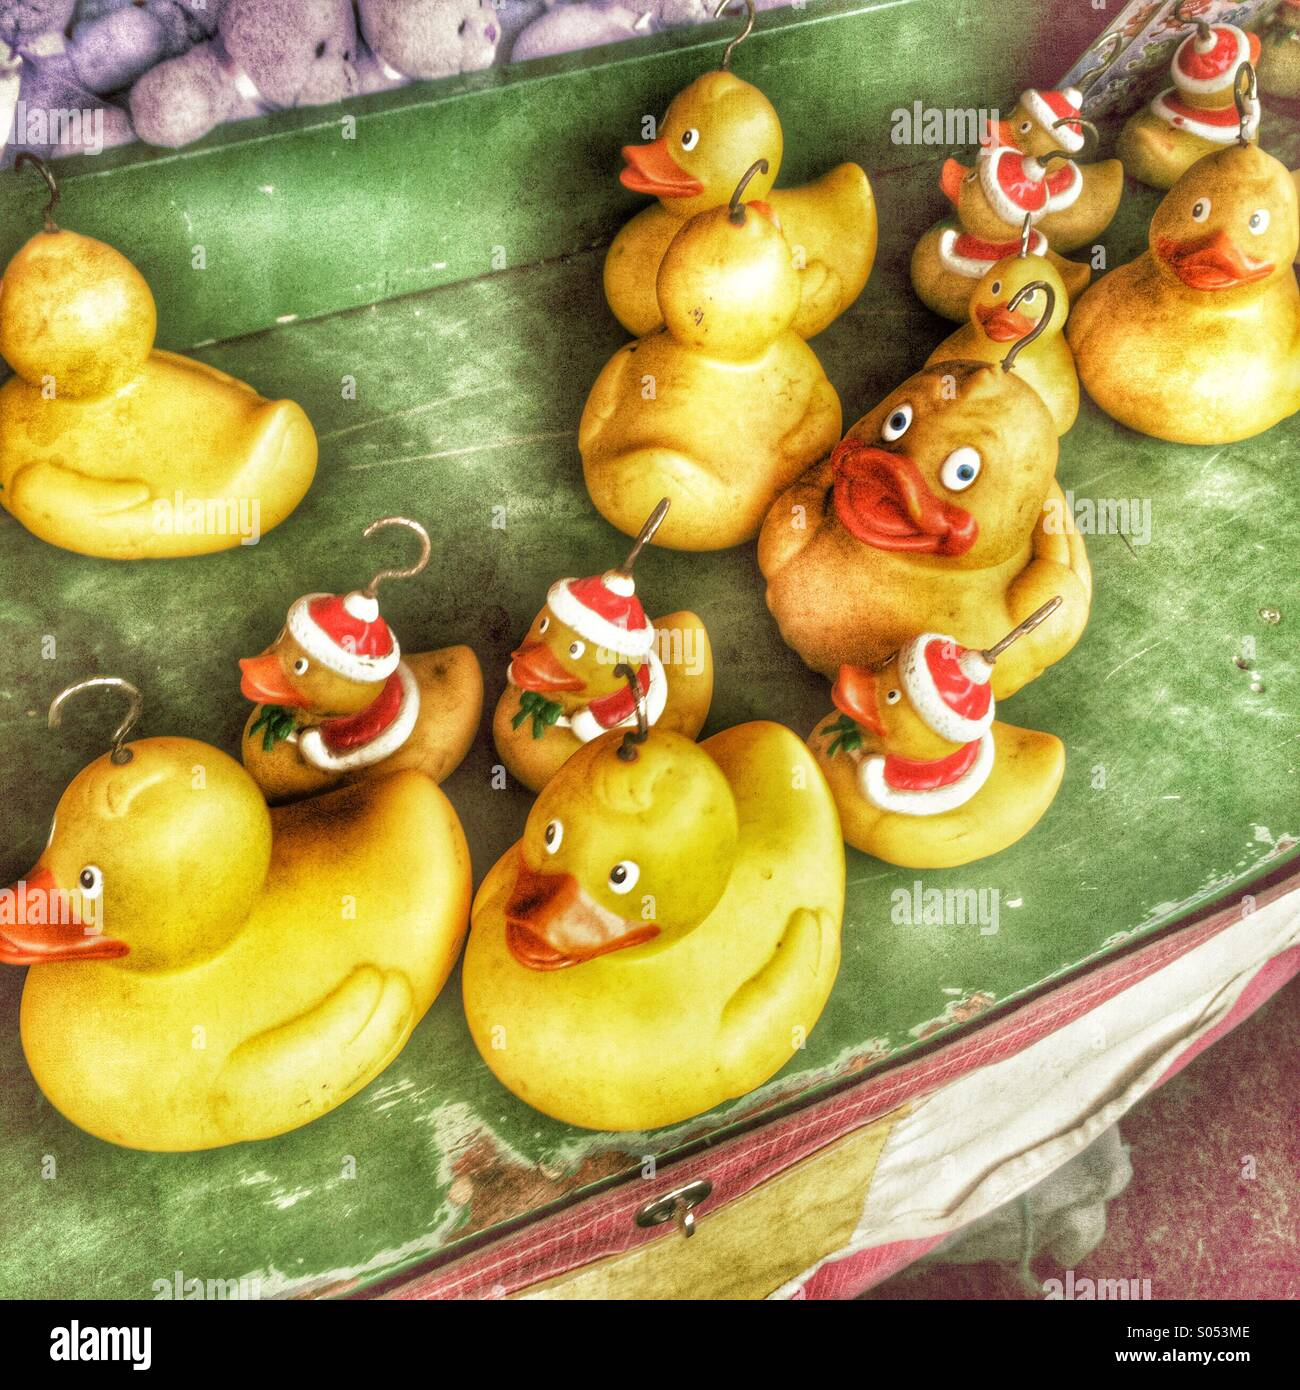 Catch the duck fairground game - Stock Image